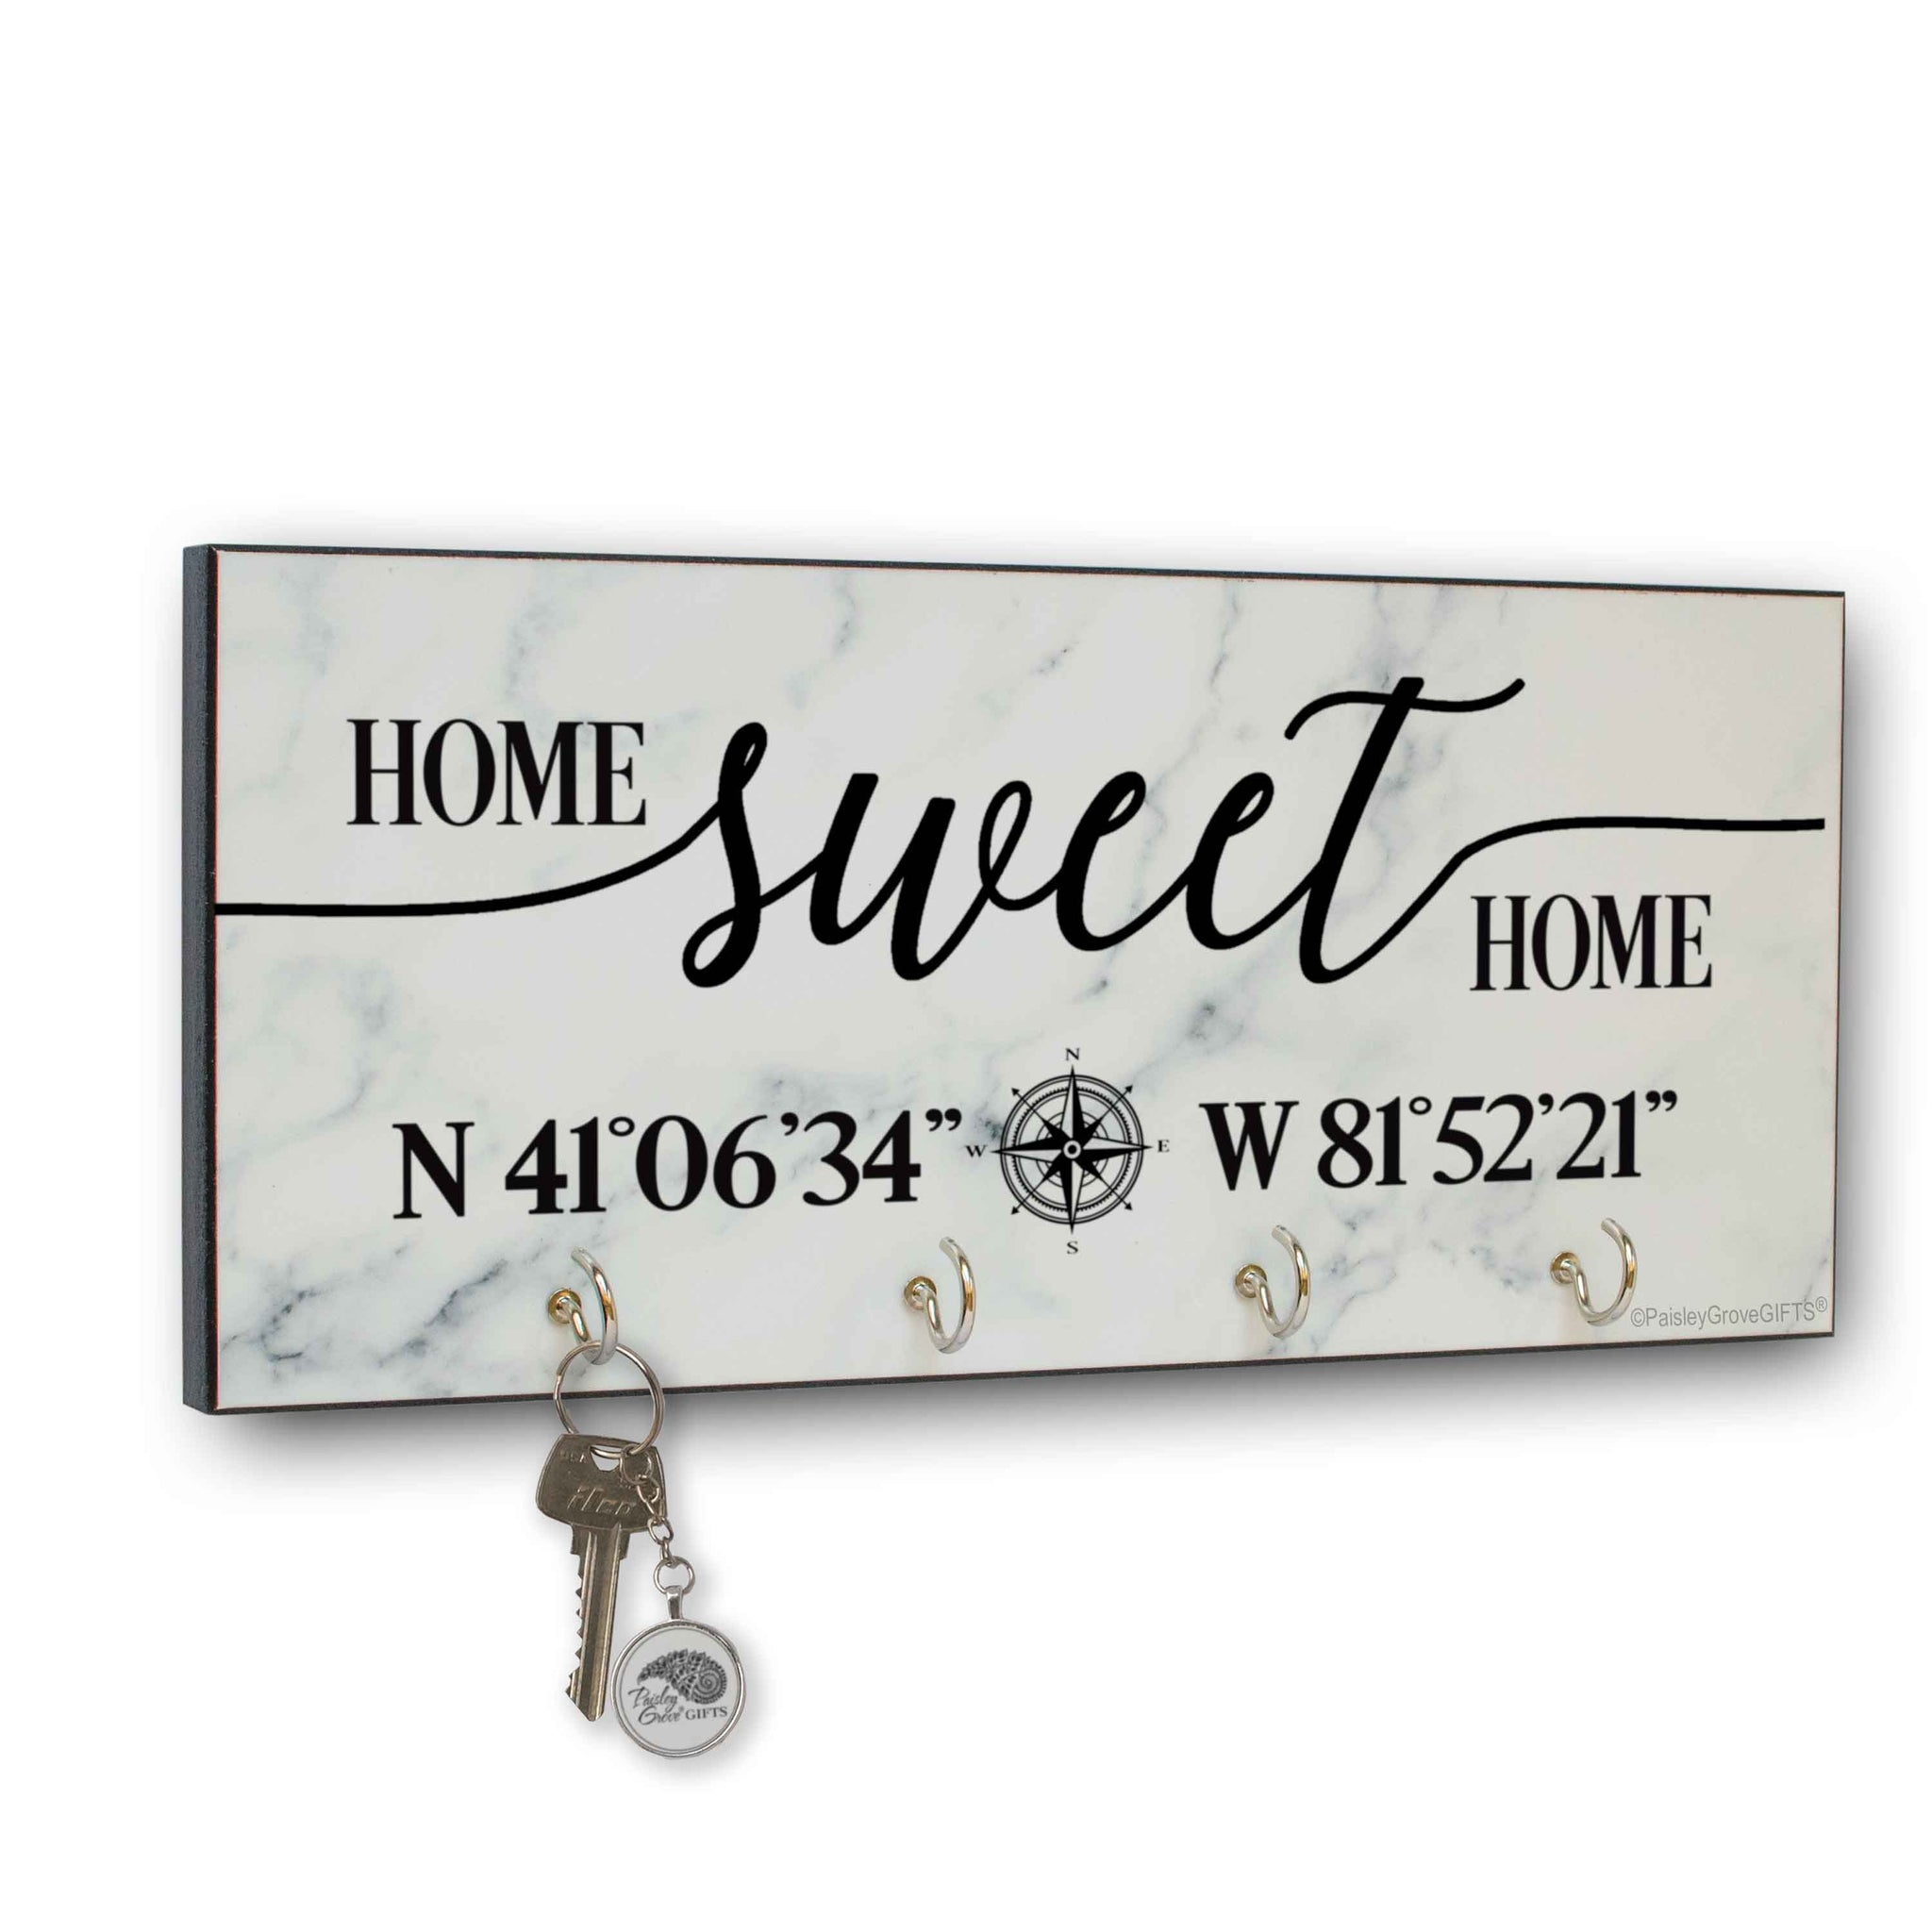 CopyrightPaisleyGroveGIFTS S303c Home Sweet Home key holder for wall Modern Marble Finish